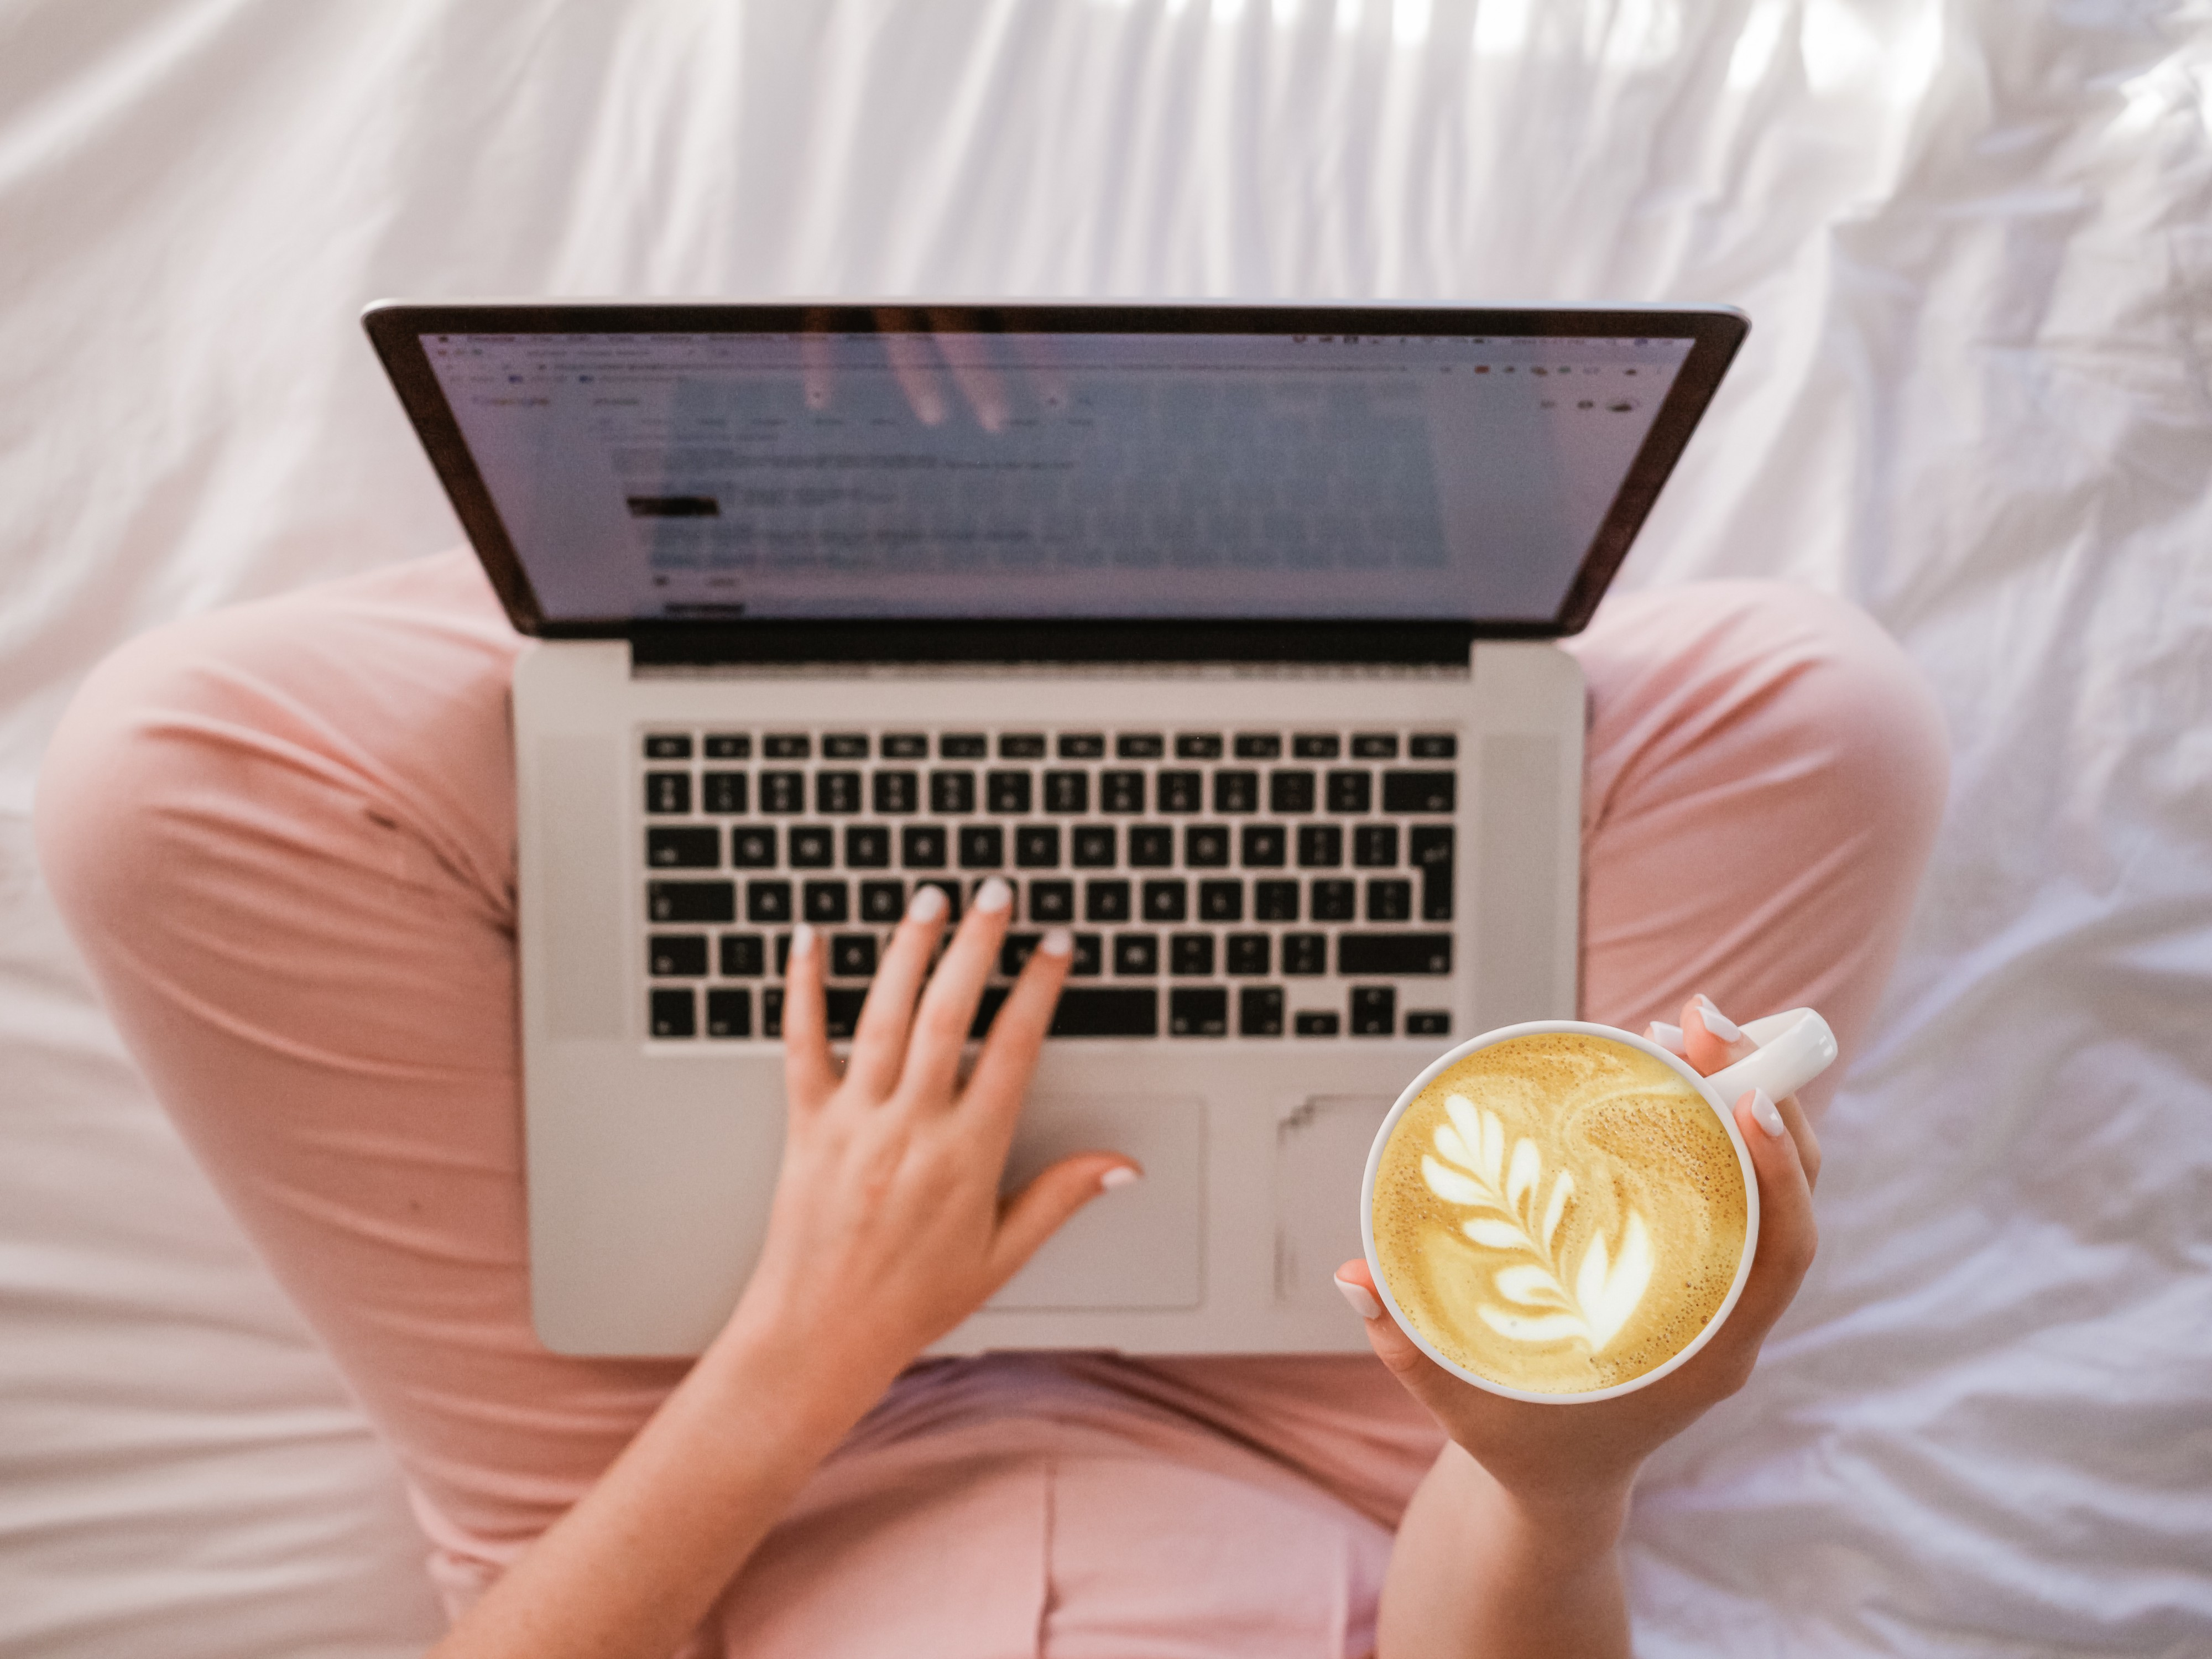 Web Hosting - Lady on a laptop drinking a cup of coffee.